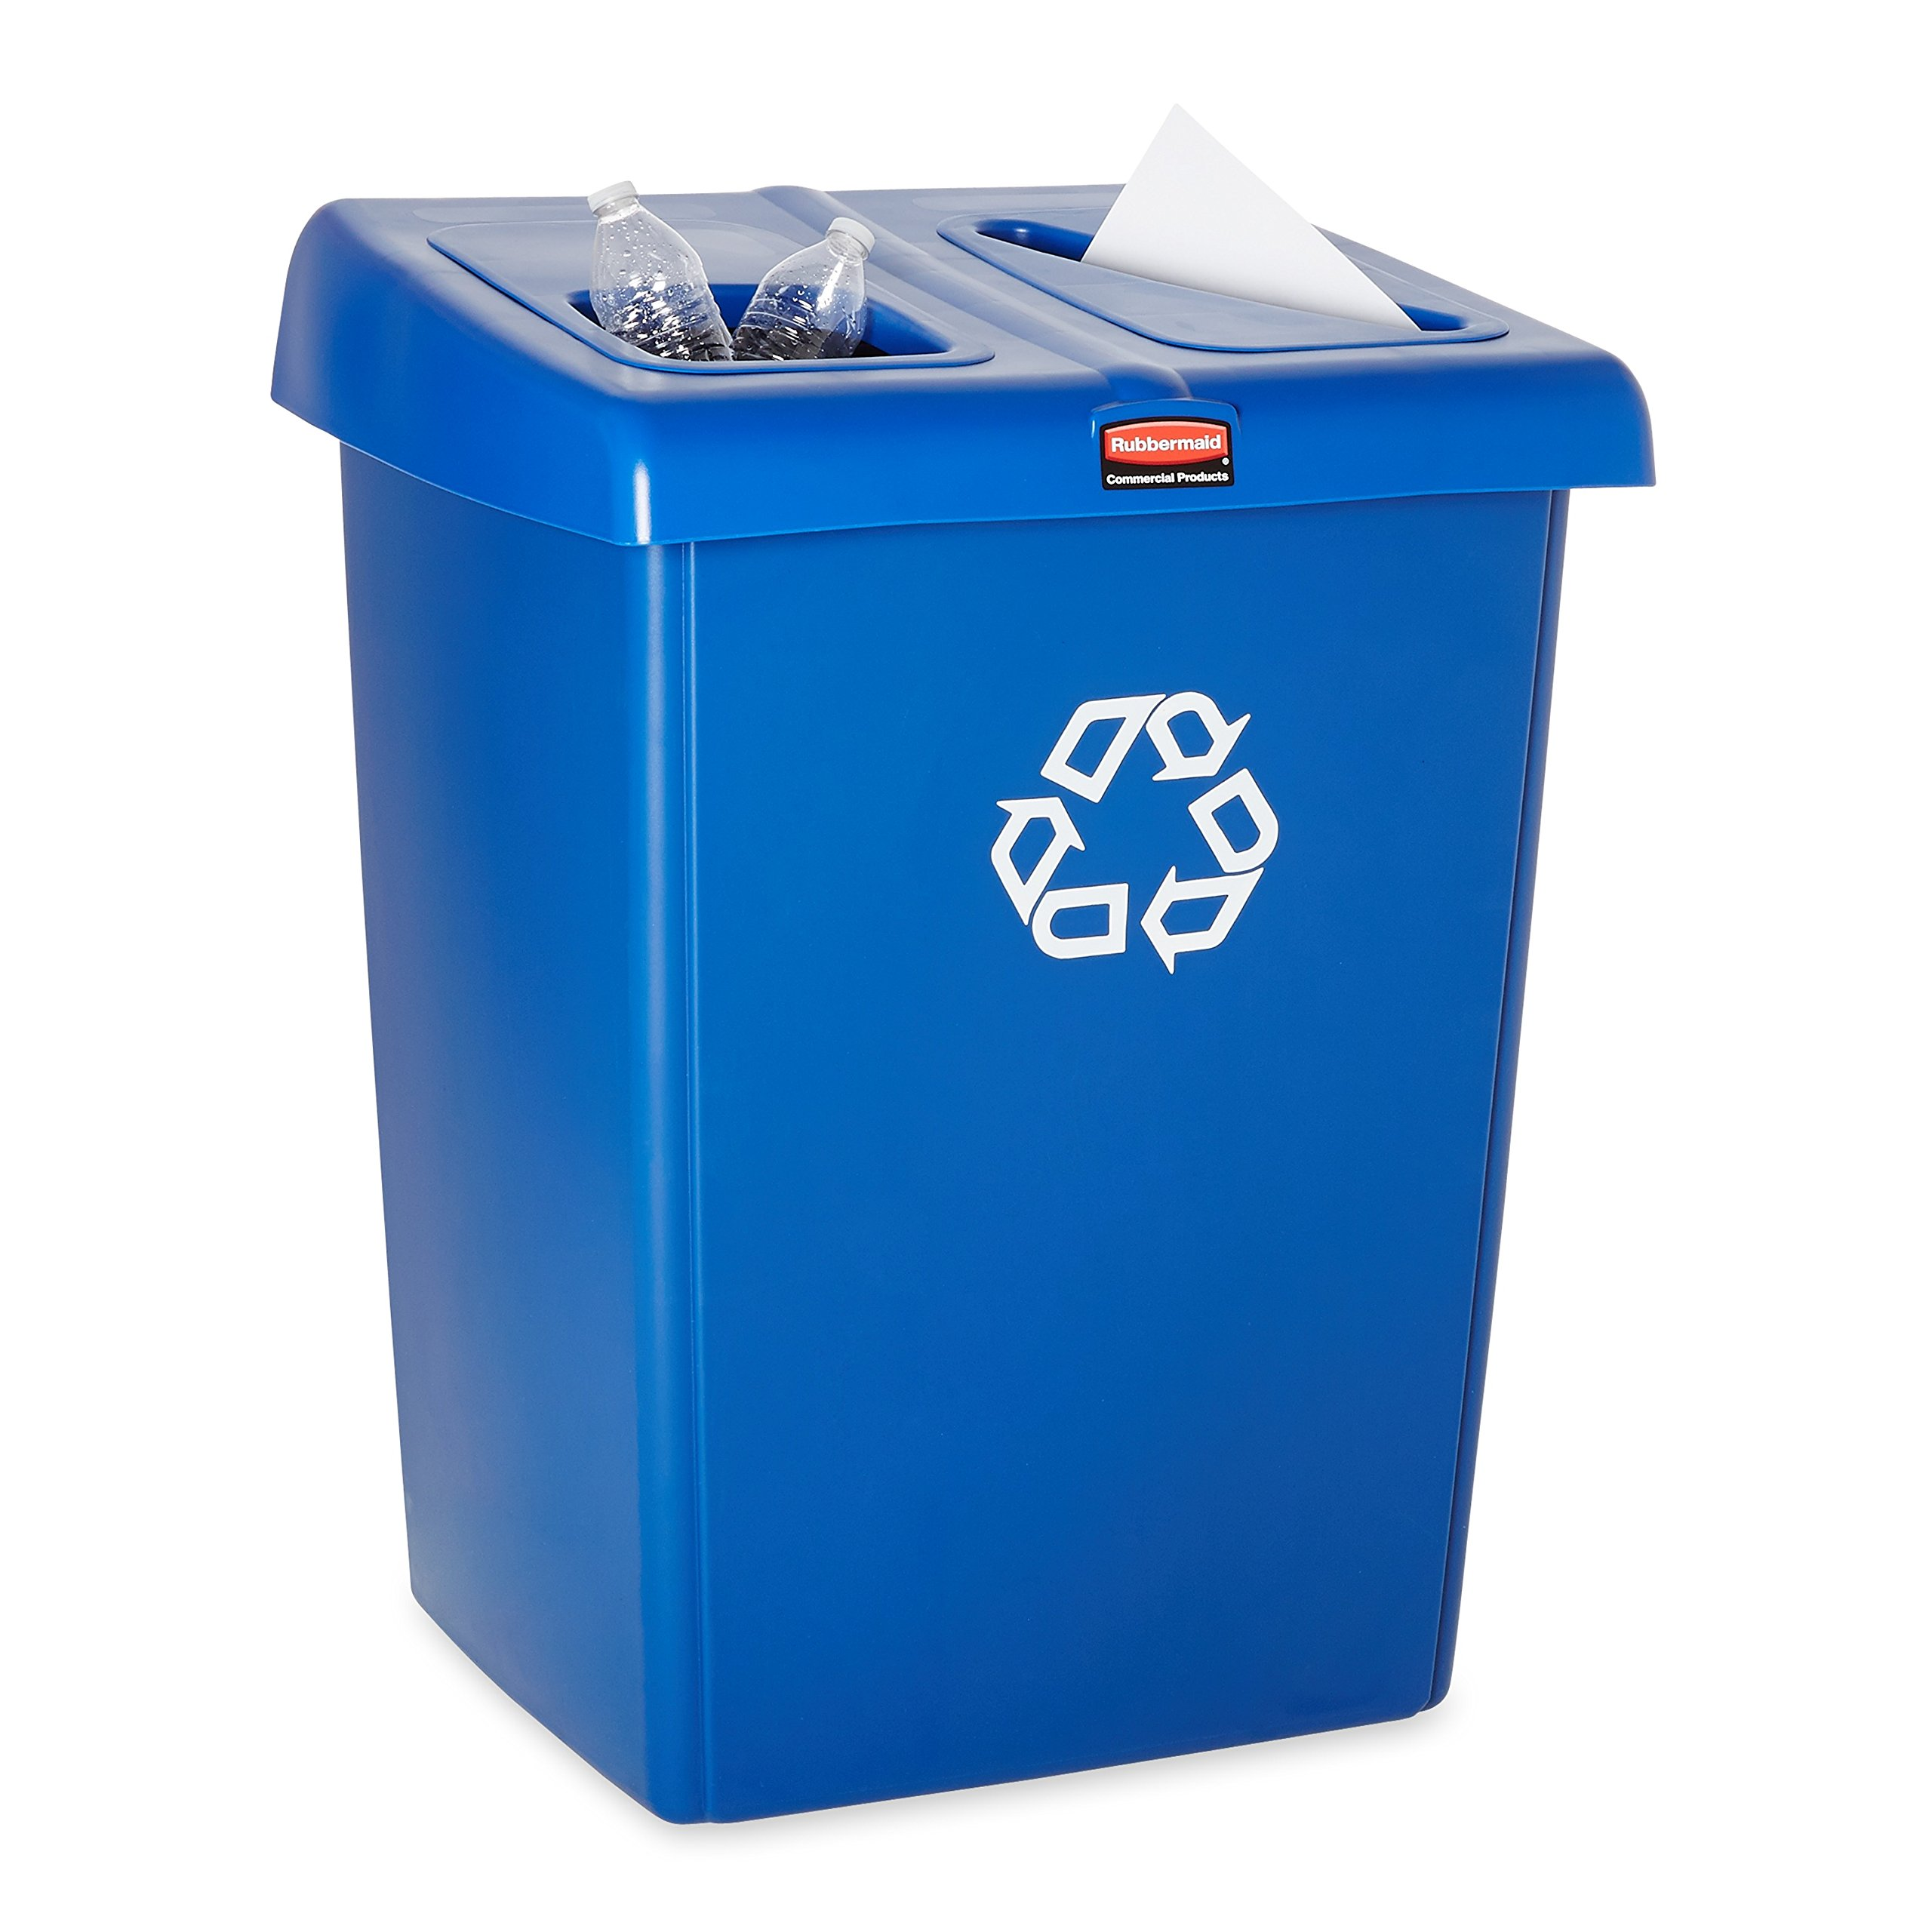 Rubbermaid Commercial 1792339 Glutton Recycling Station, 2-Stream, 46-Gallon, Blue by Rubbermaid Commercial Products (Image #7)